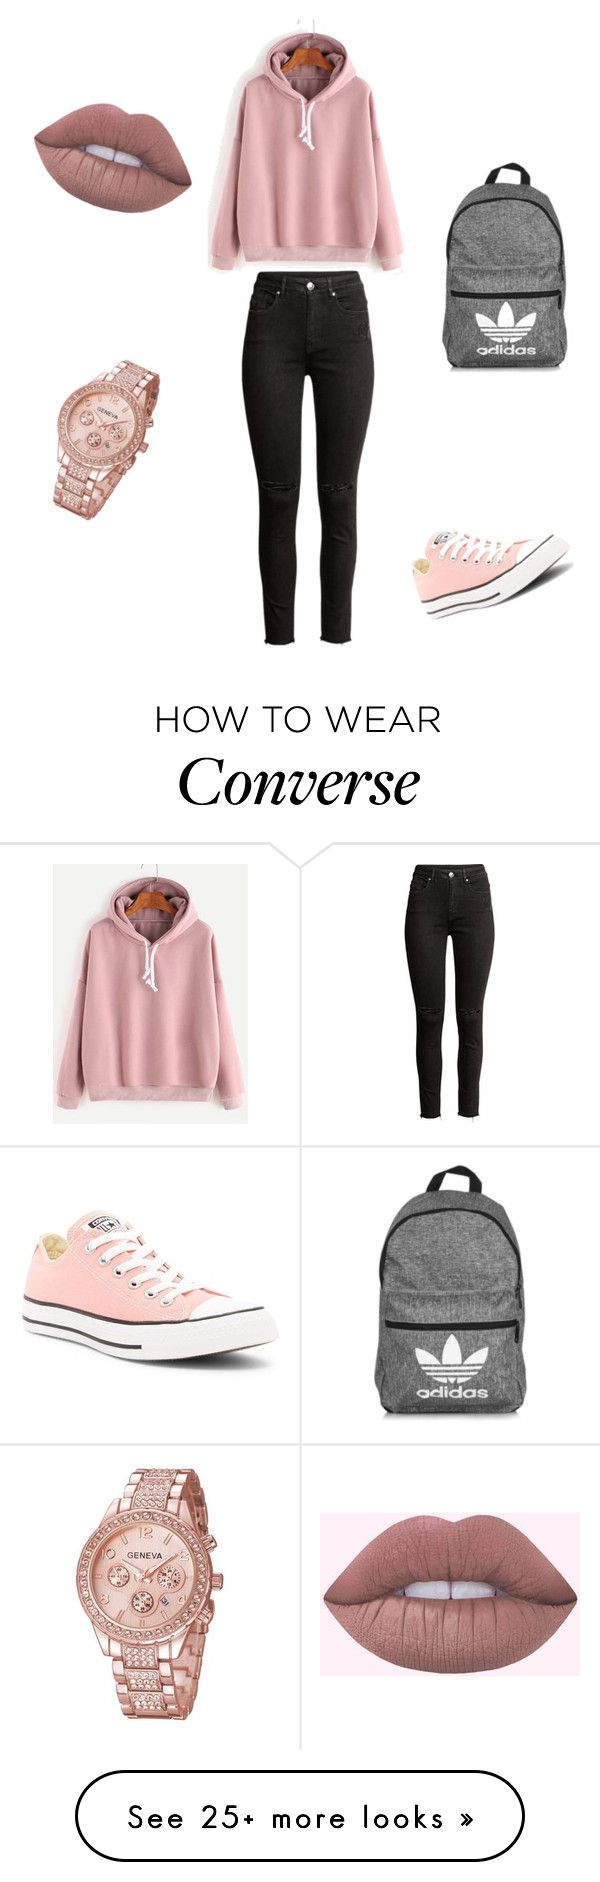 """#school #outfit"" by ivaila02 on Polyvore featuring Converse and adidas"